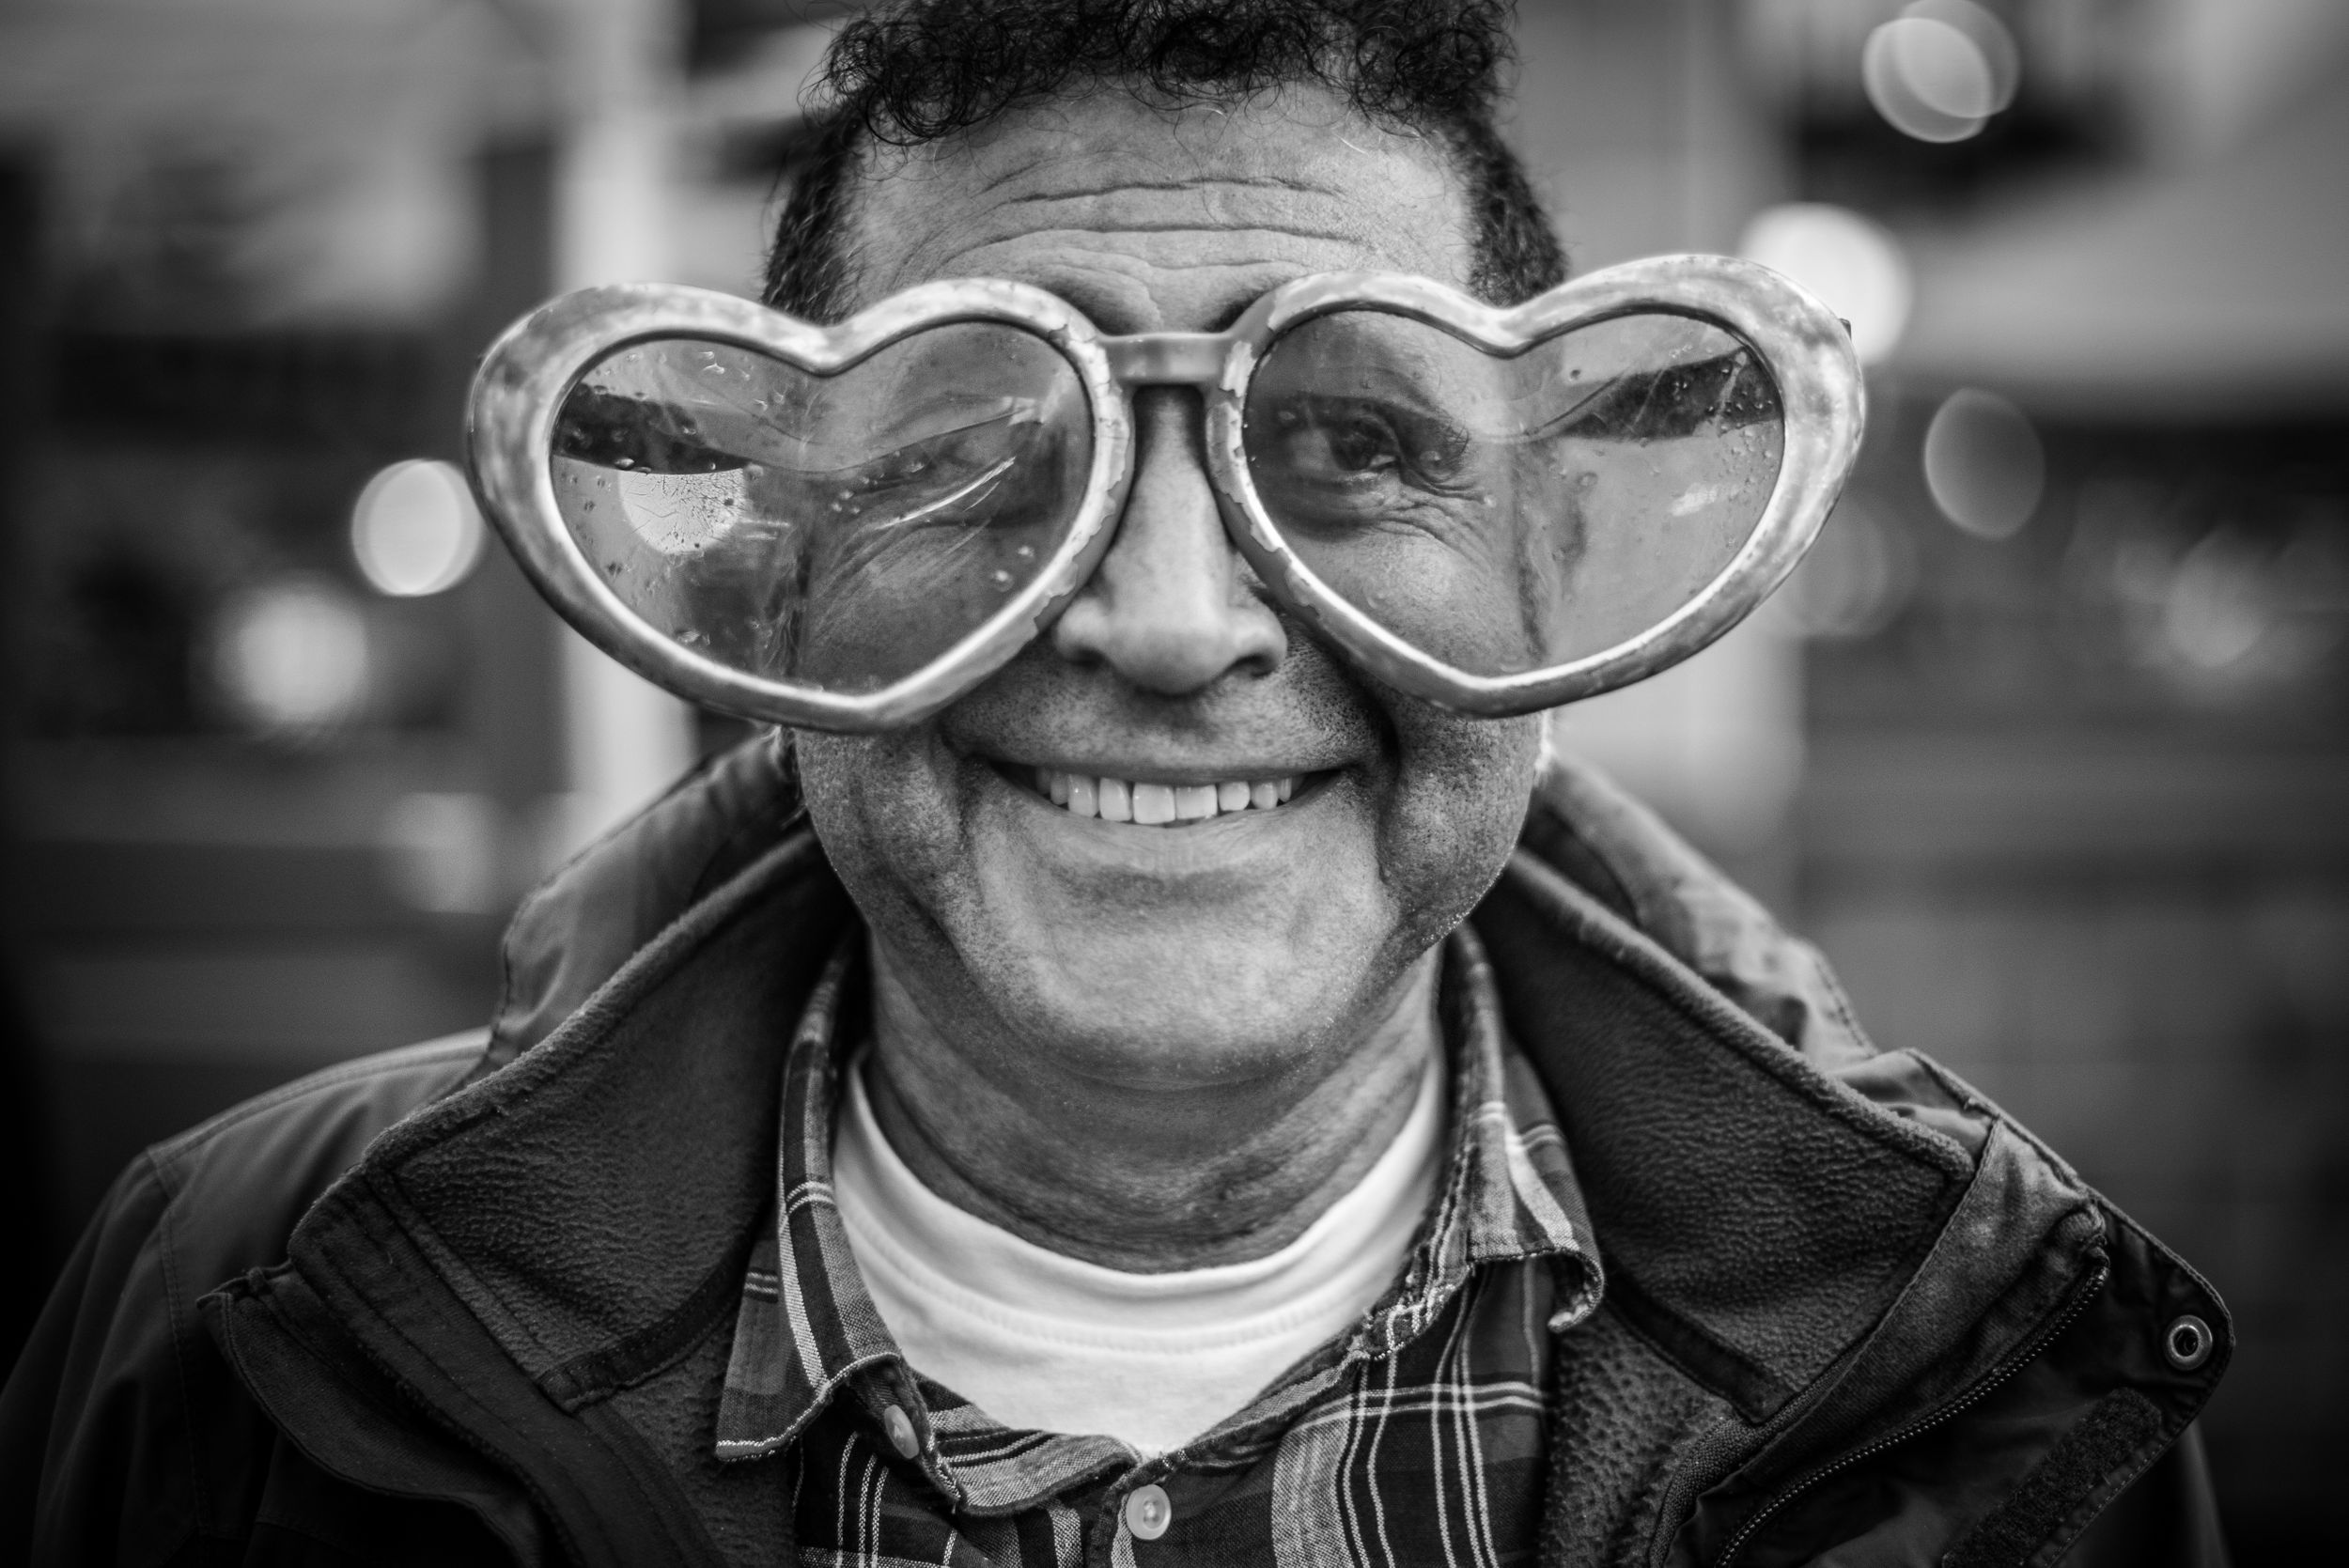 Man wearing oversized heart shaped sunglasses at the Portabello Market in London